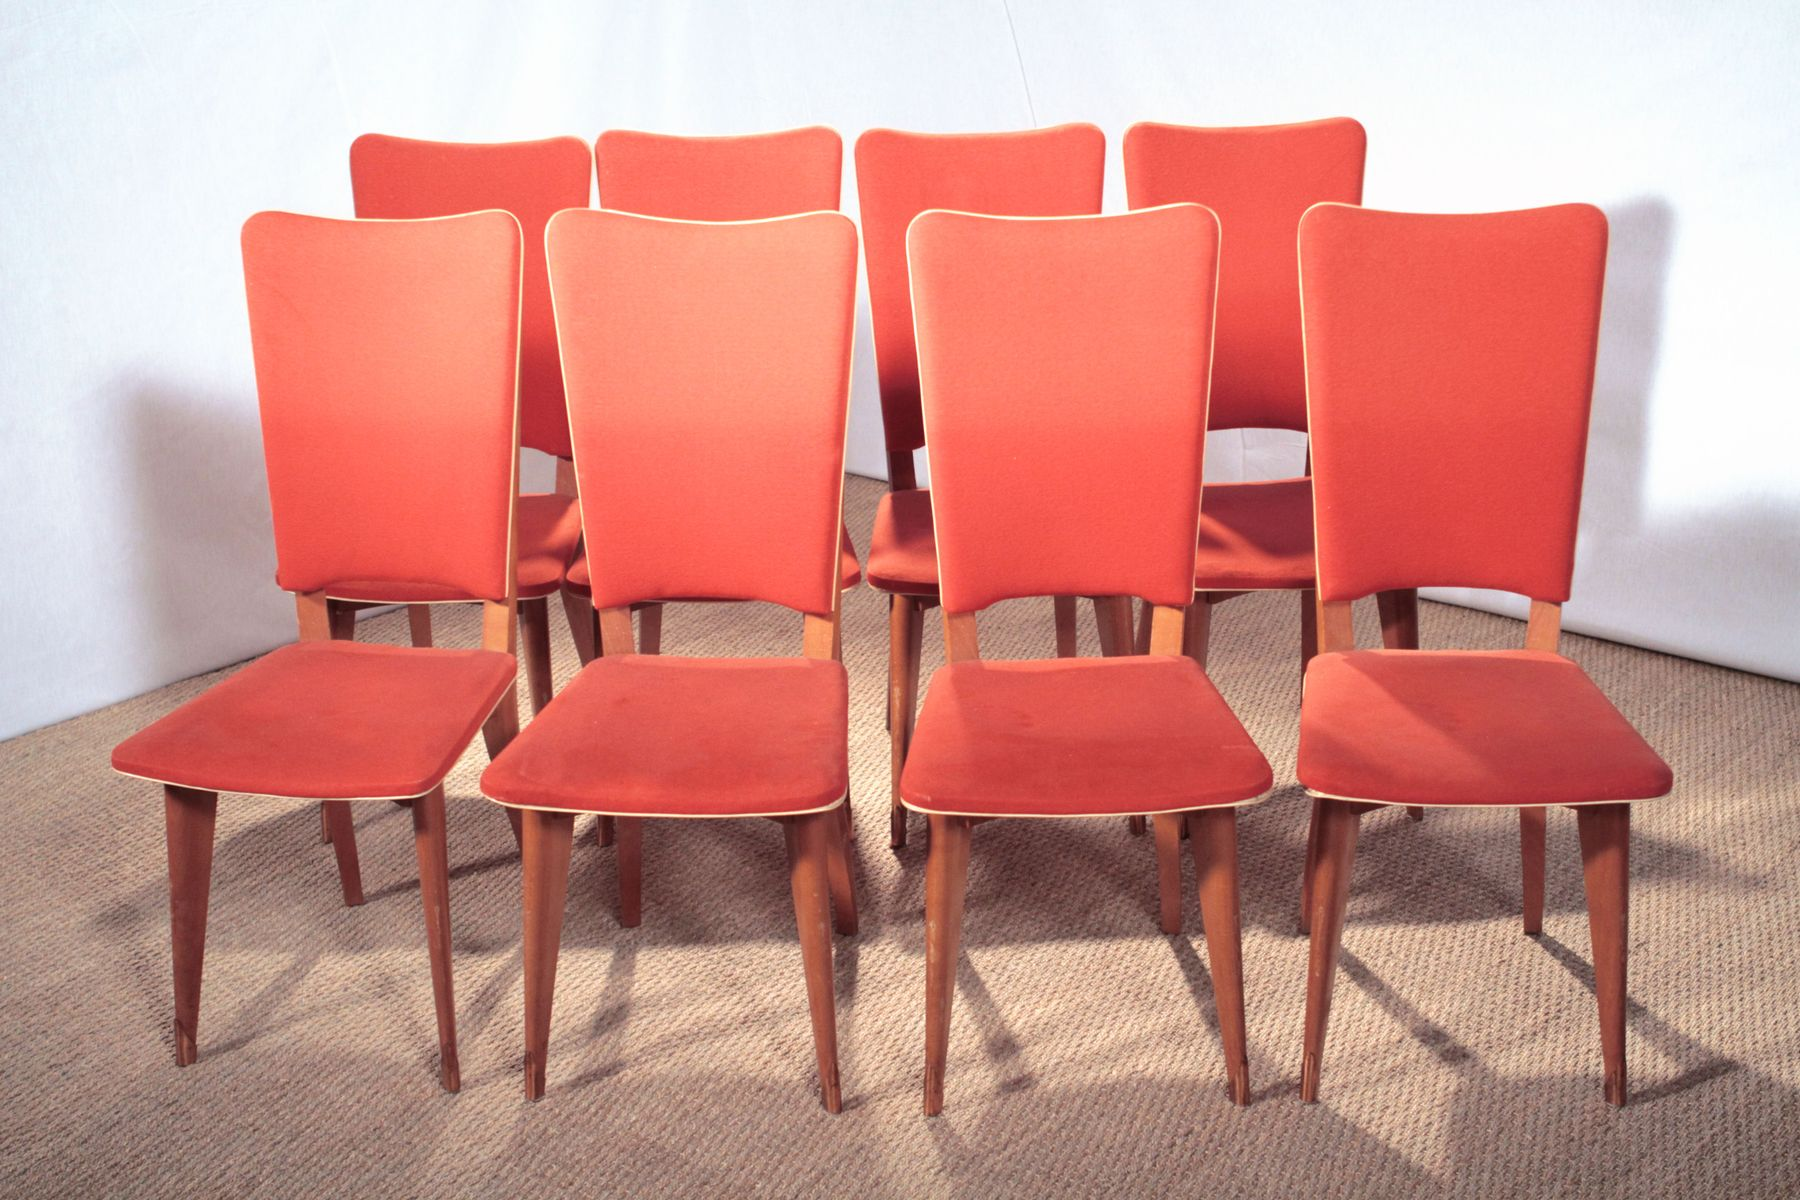 Art Deco Style Pink Dining Chairs 1950s Set Of 8 For